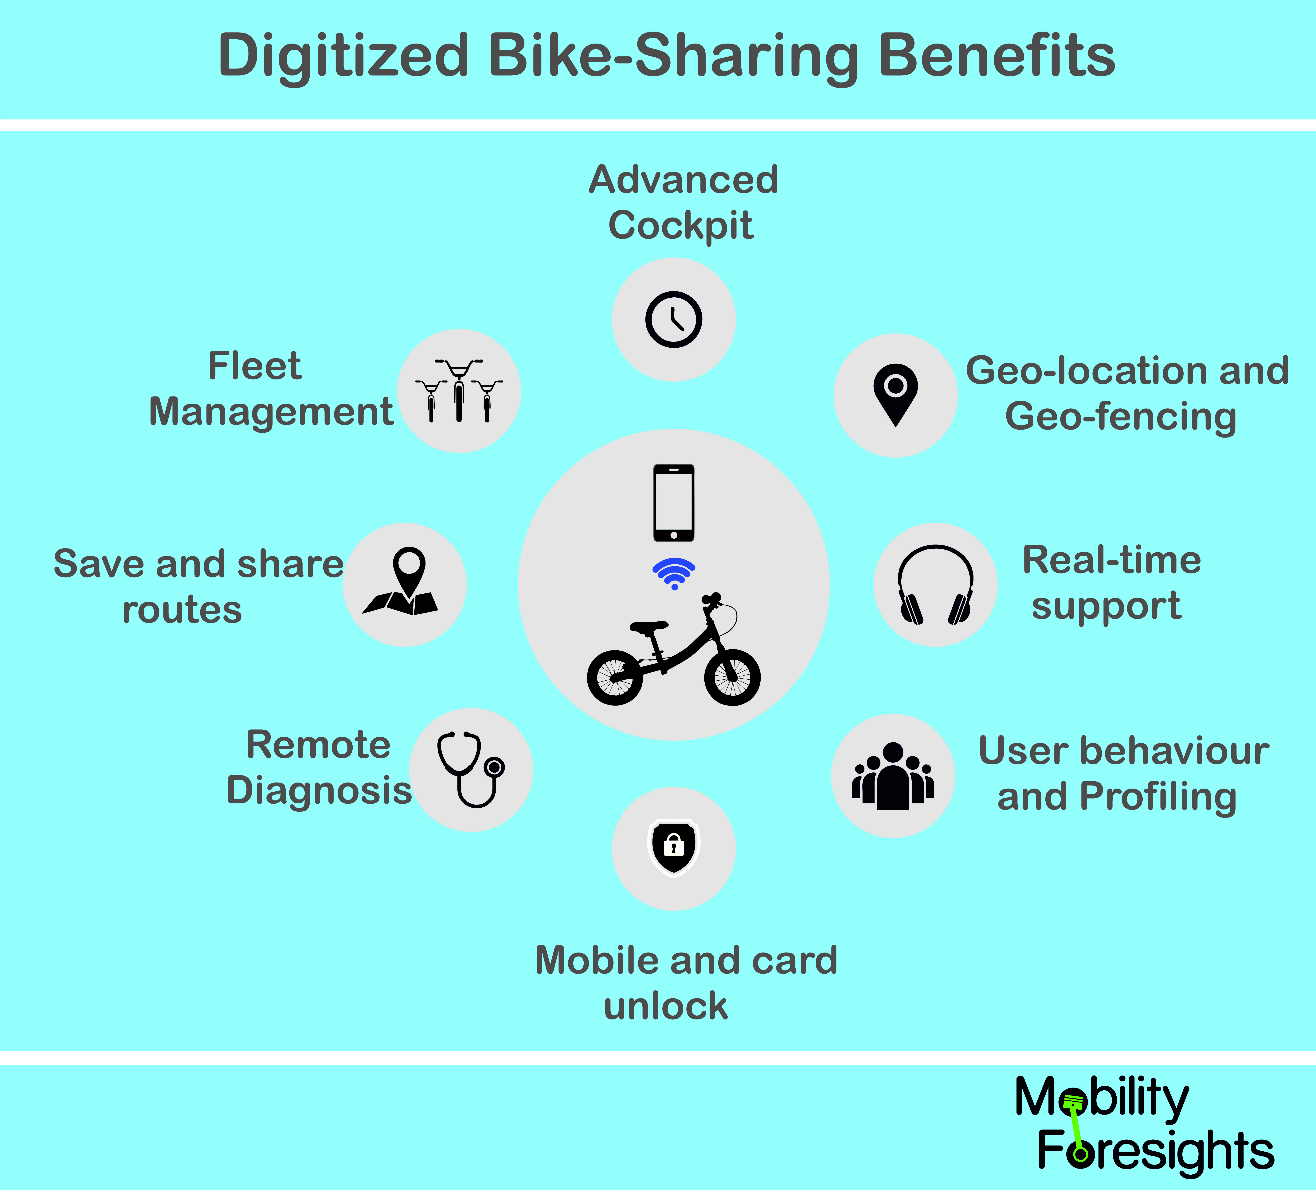 what are the benefits of digitized bike sharing ? it includes fleet management, real time support, remote diagnostics